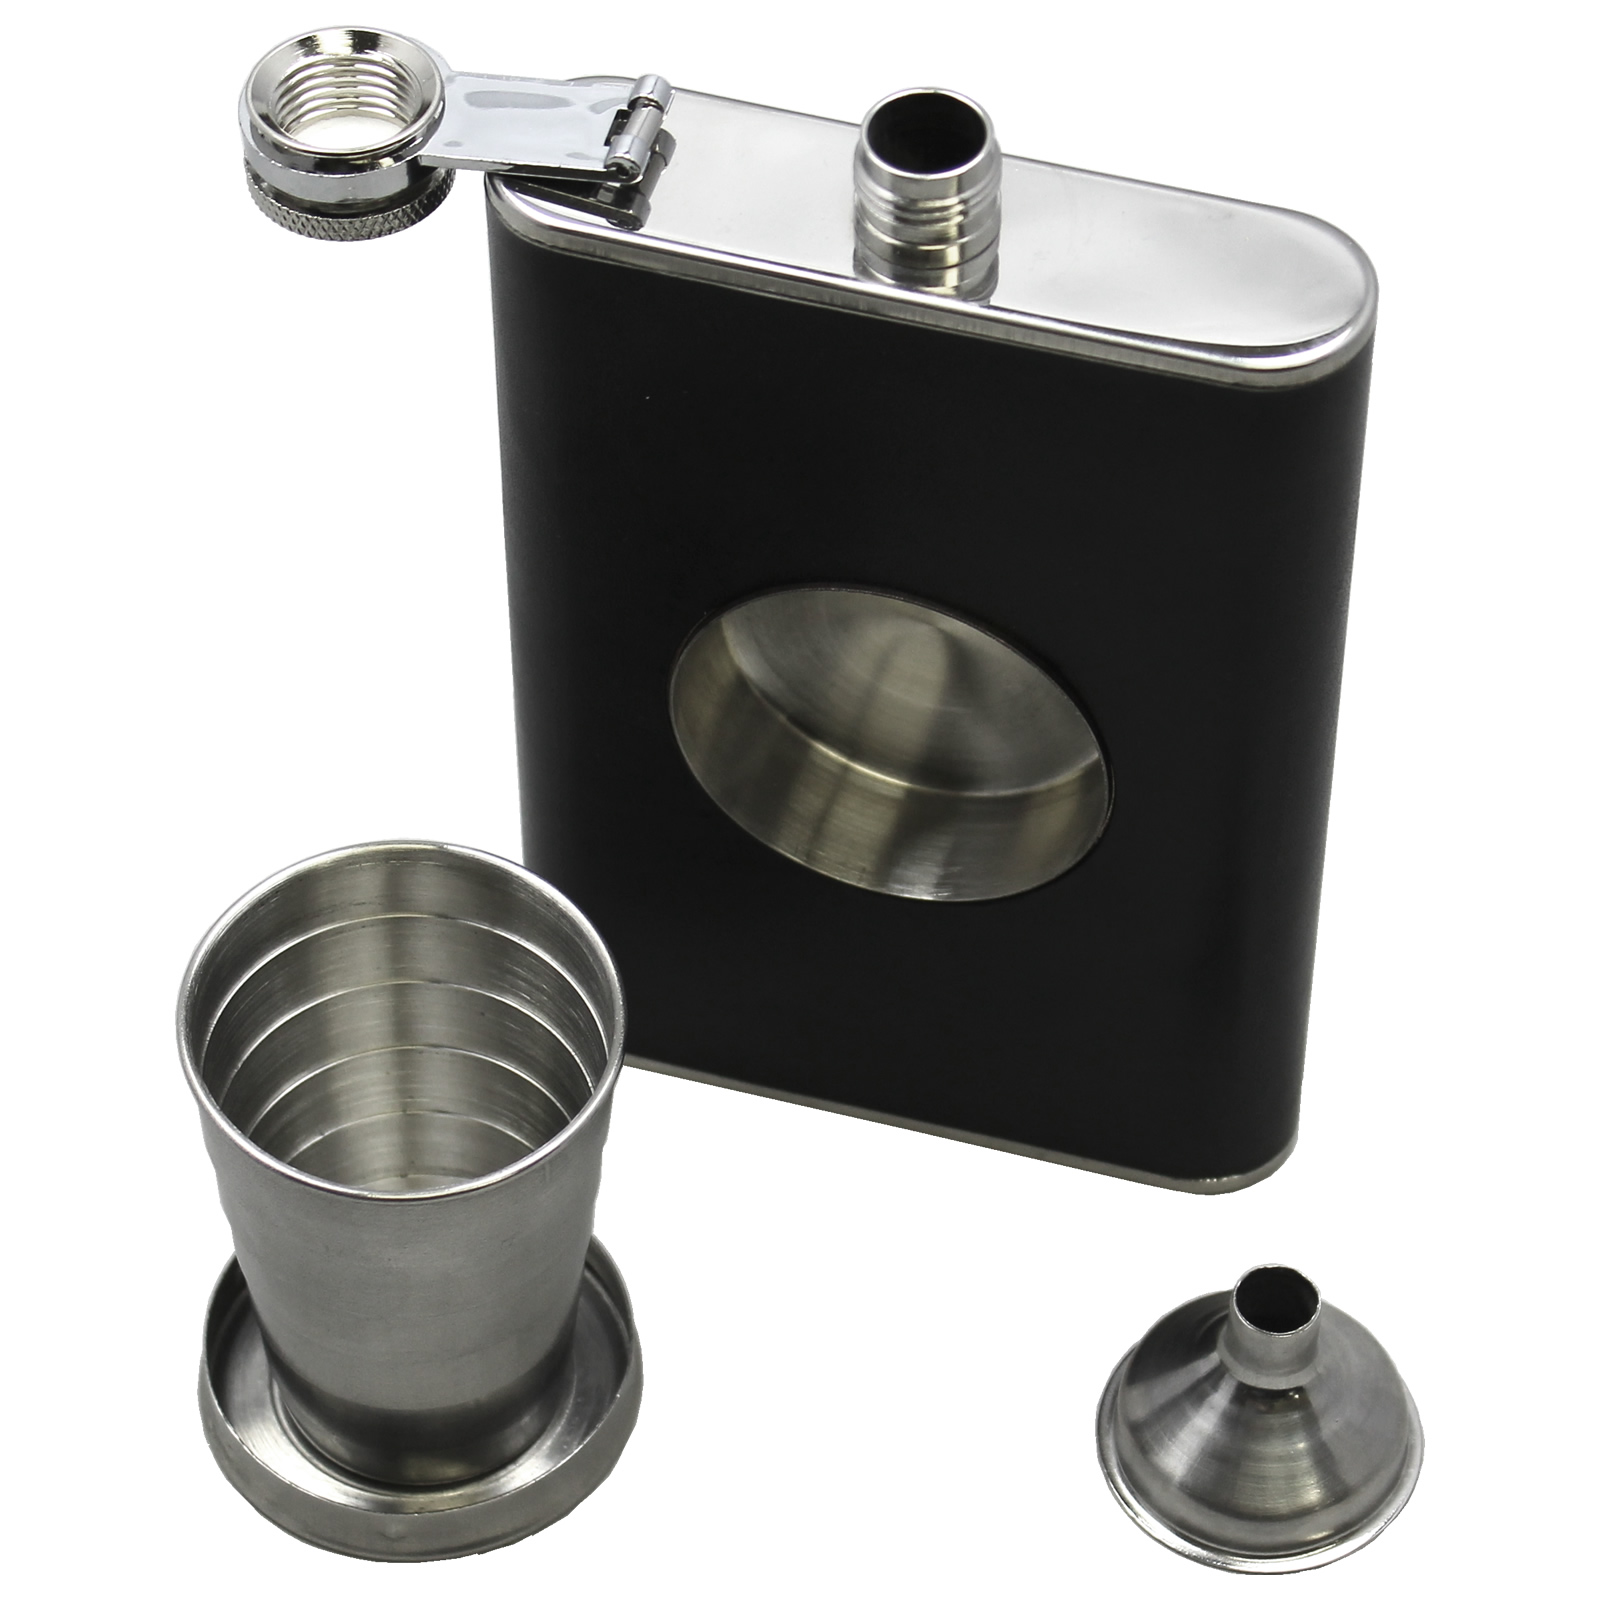 8 fluid ounce Stainless Steel Flask, with Funnel & Built-in Collapsible Shot Glass